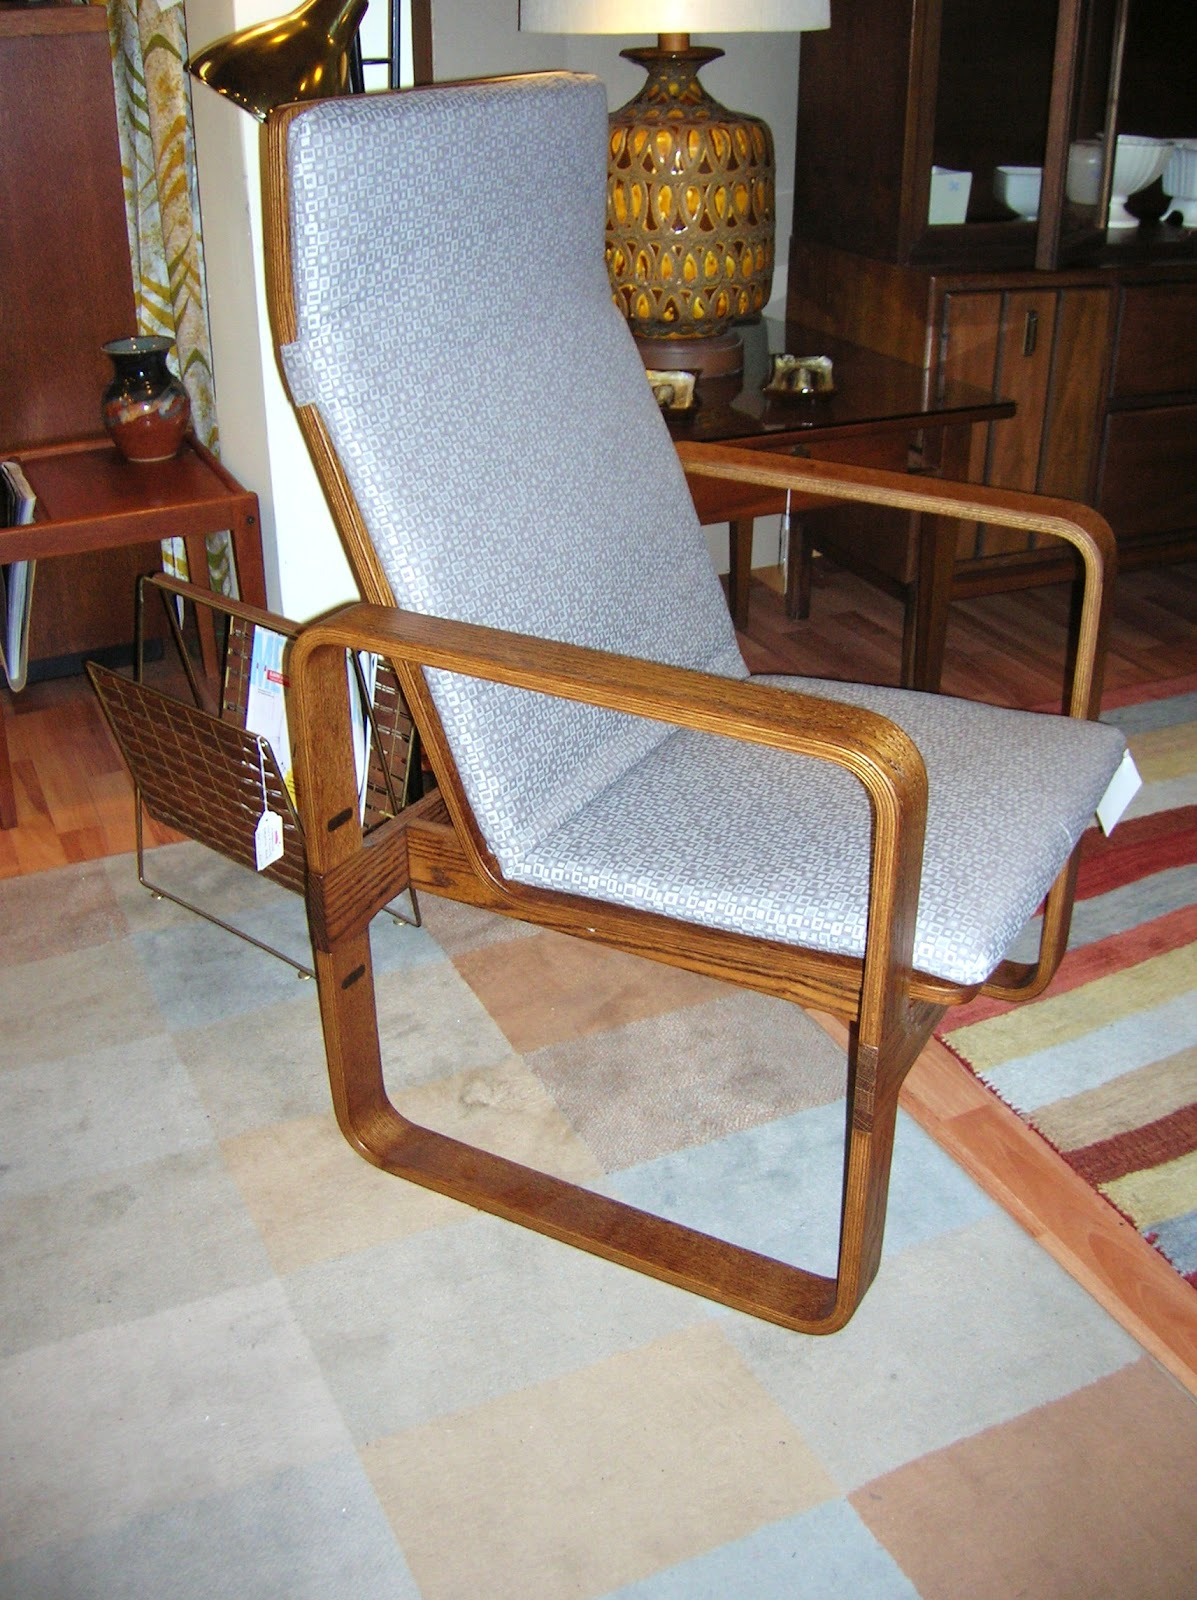 A Modern Line / Heywood Wakefield refinishing and other mid-century ...